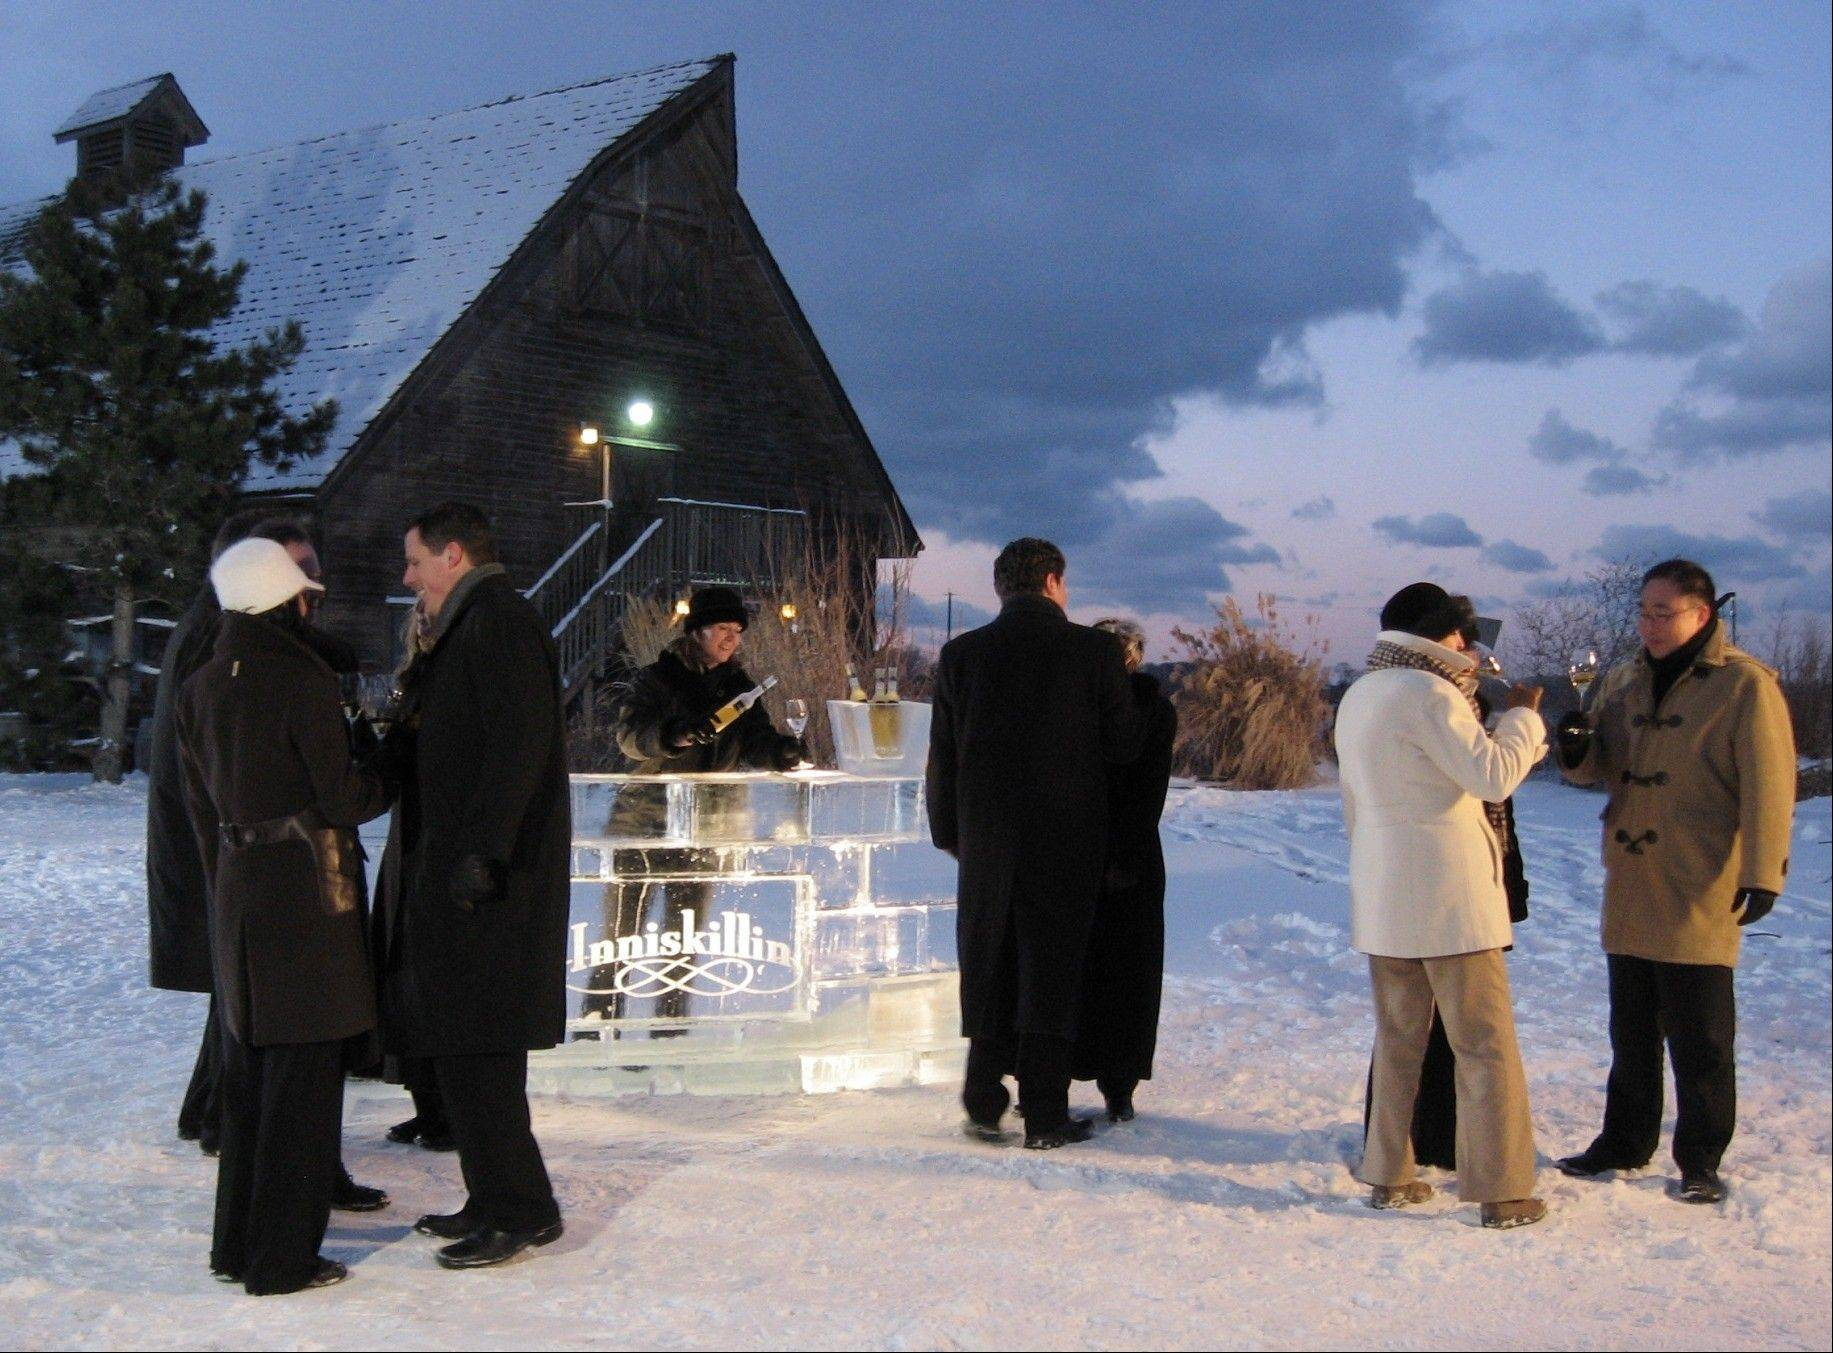 Visitors enjoy the Niagara-on-the-Lake's annual winter icewine festival in Ontario, Canada. More than two dozen wineries are best-known for a specialty wine called icewine that's made from frozen grapes.